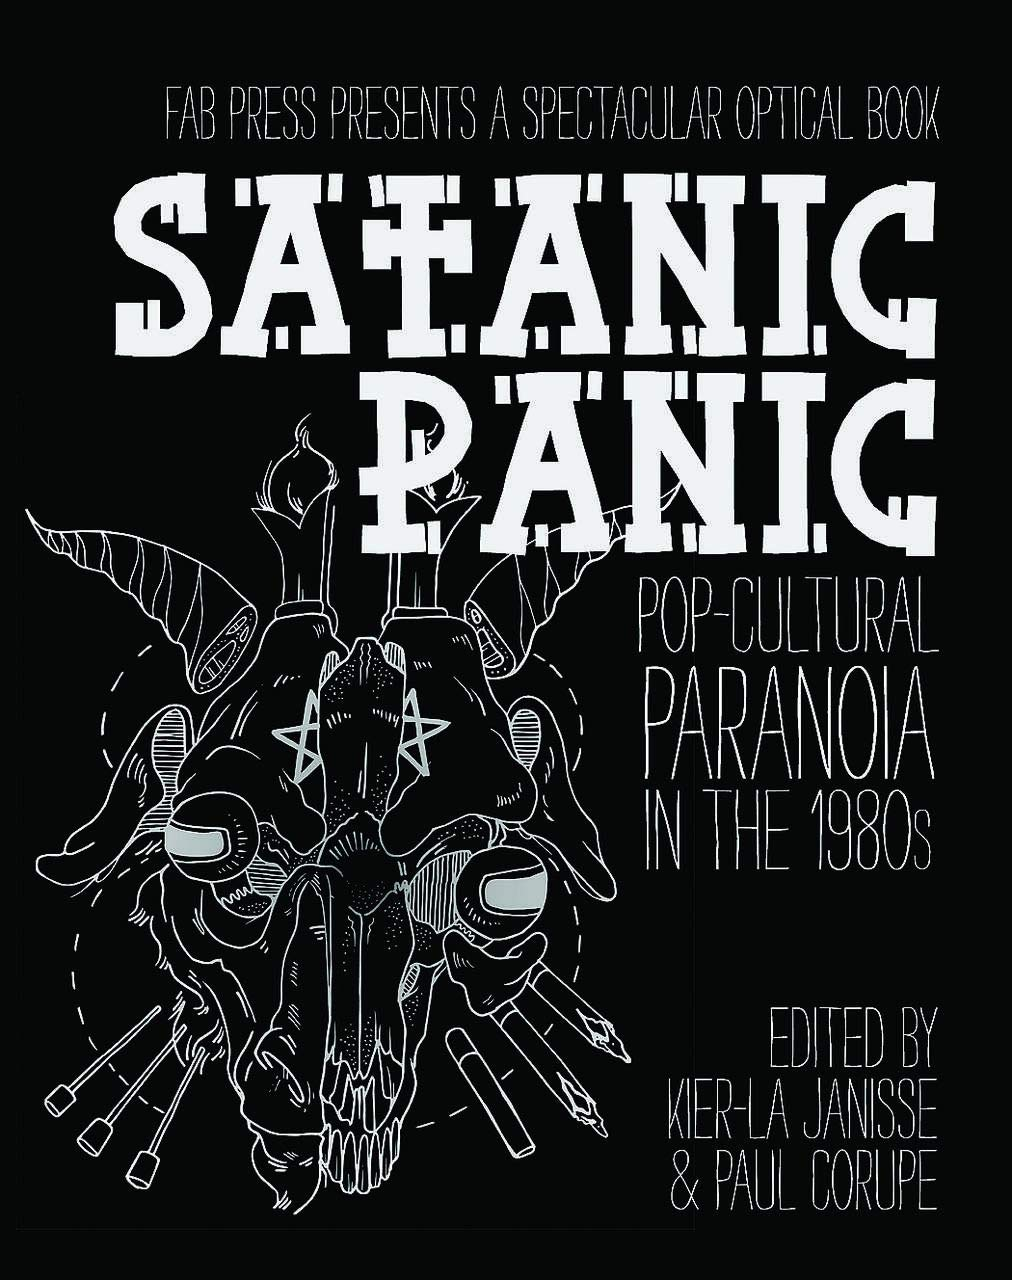 Satanic Panic: Pop-Cultural Paranoia in the 1980s by Kier-La Janisse